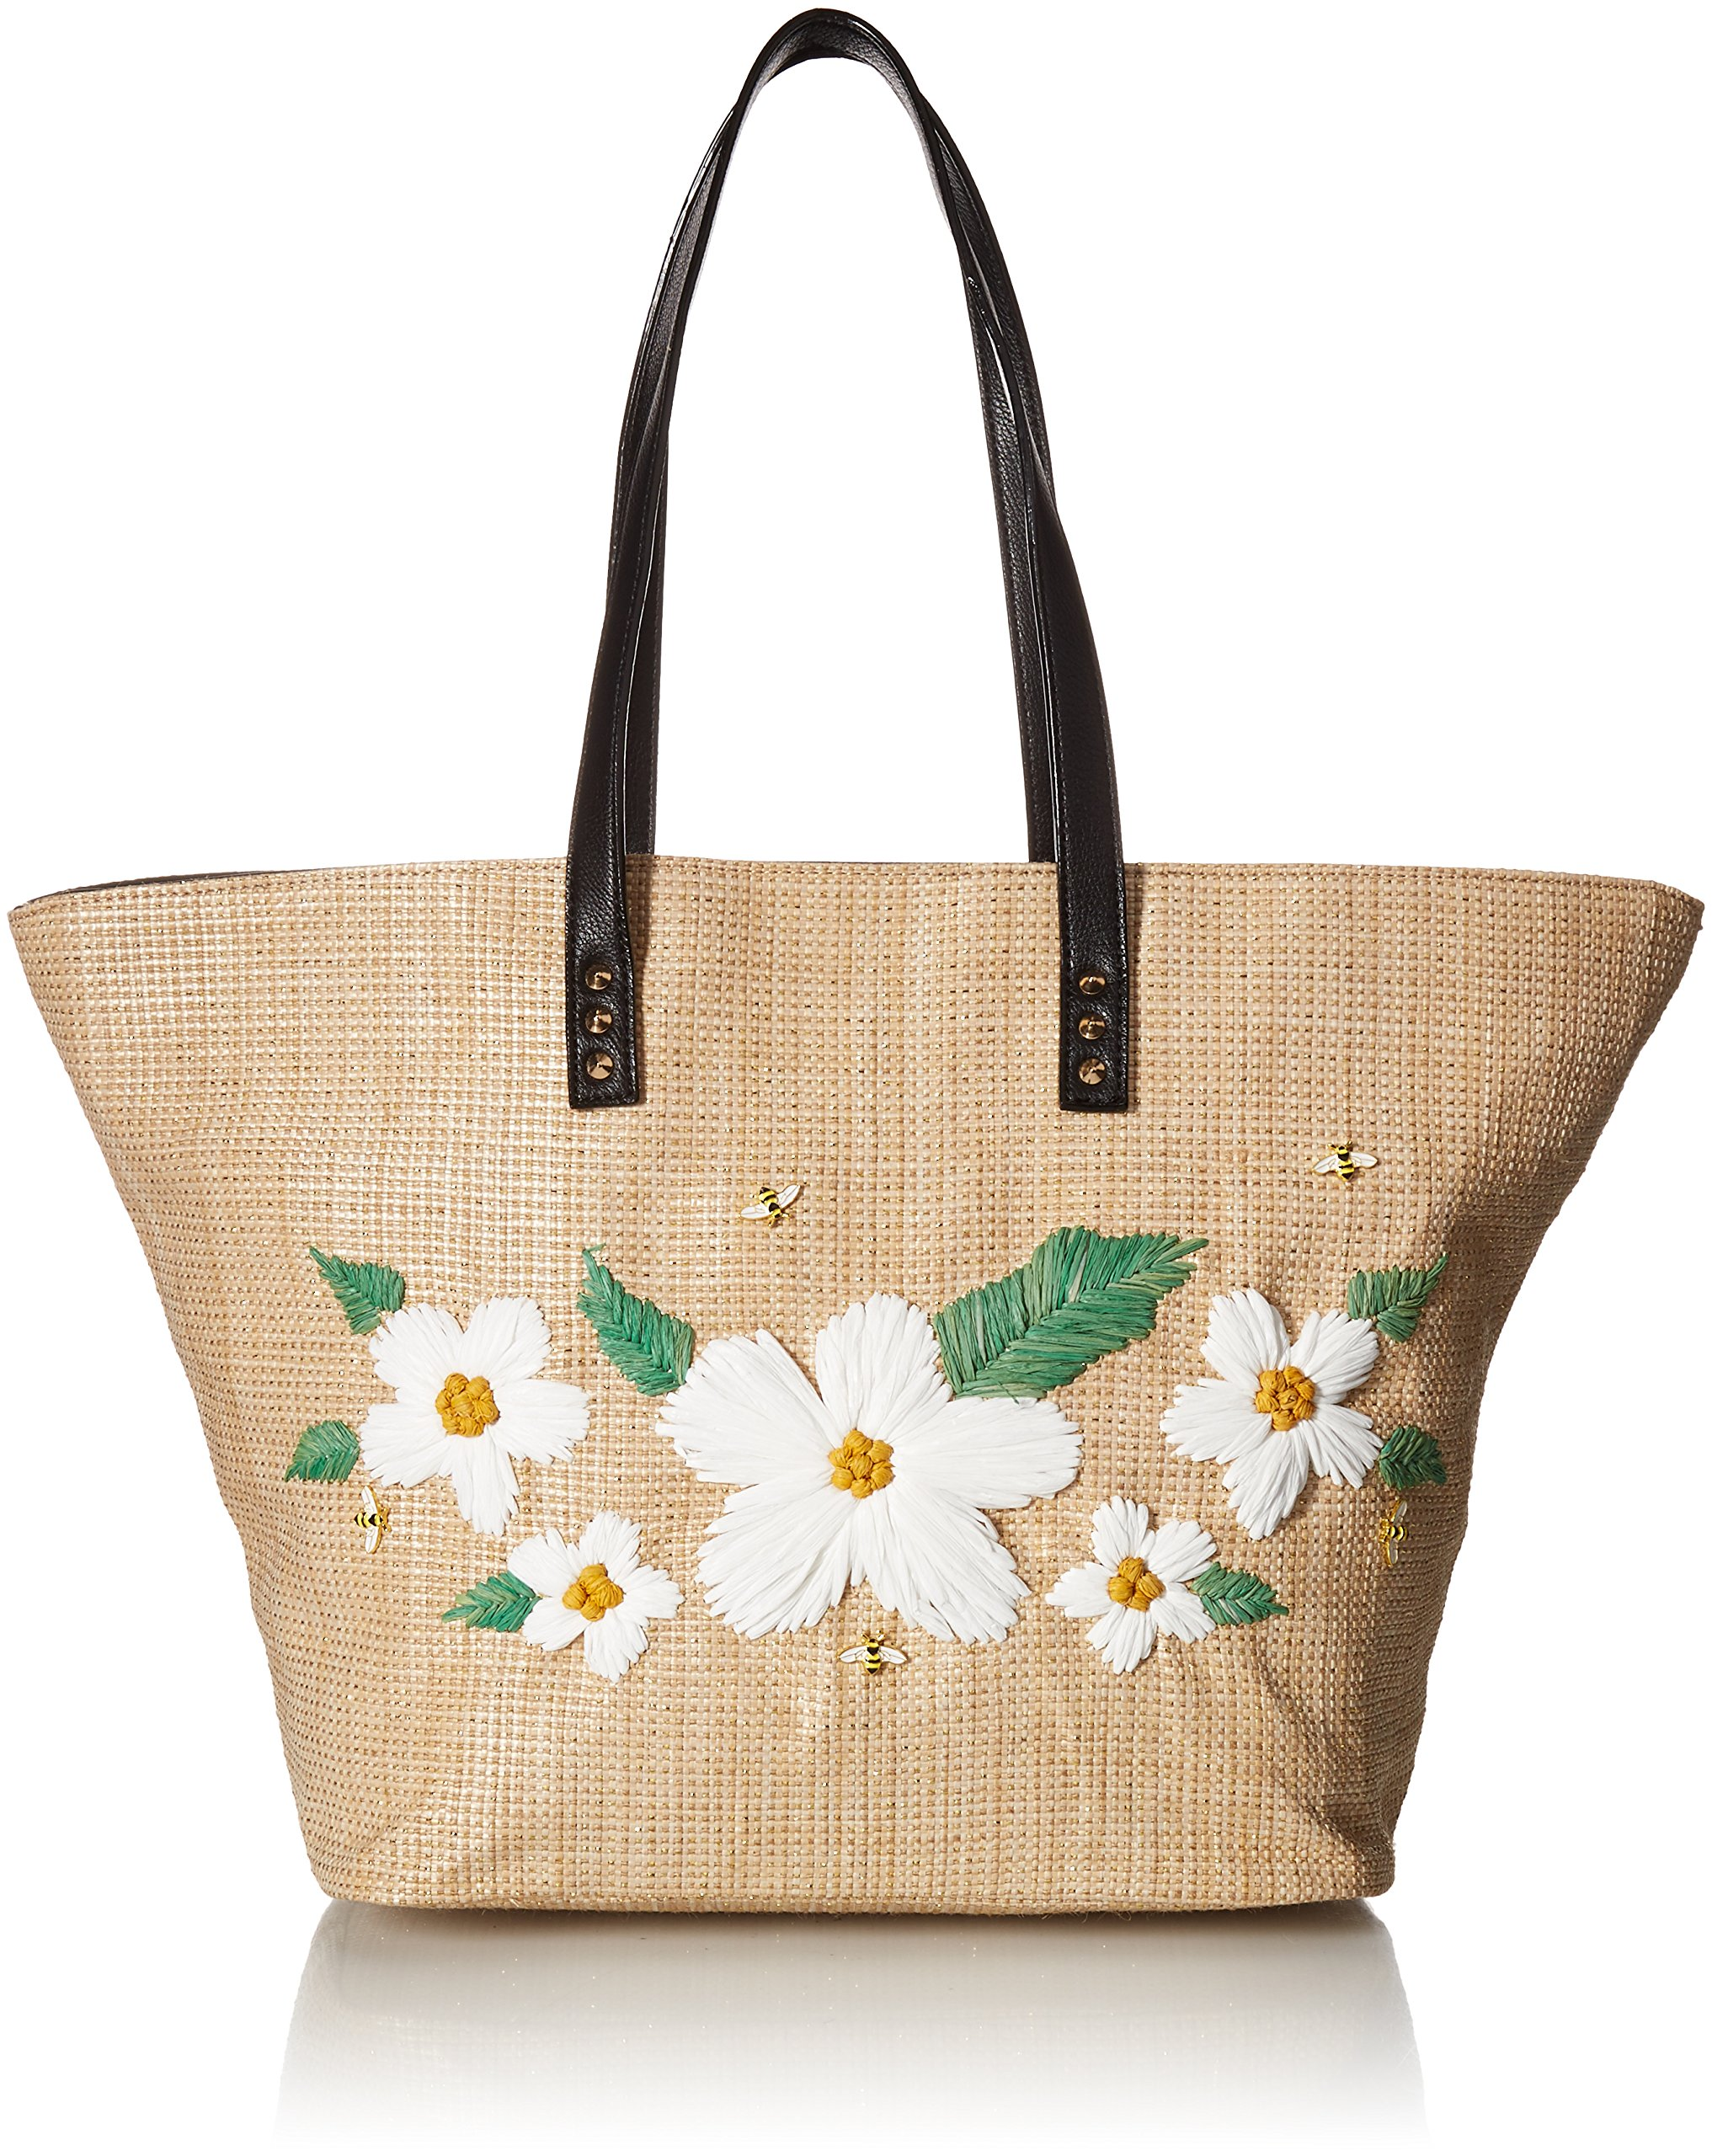 Betsey Johnson Daisy'D and Confused Flower Tote Shoulder Bag, Natural